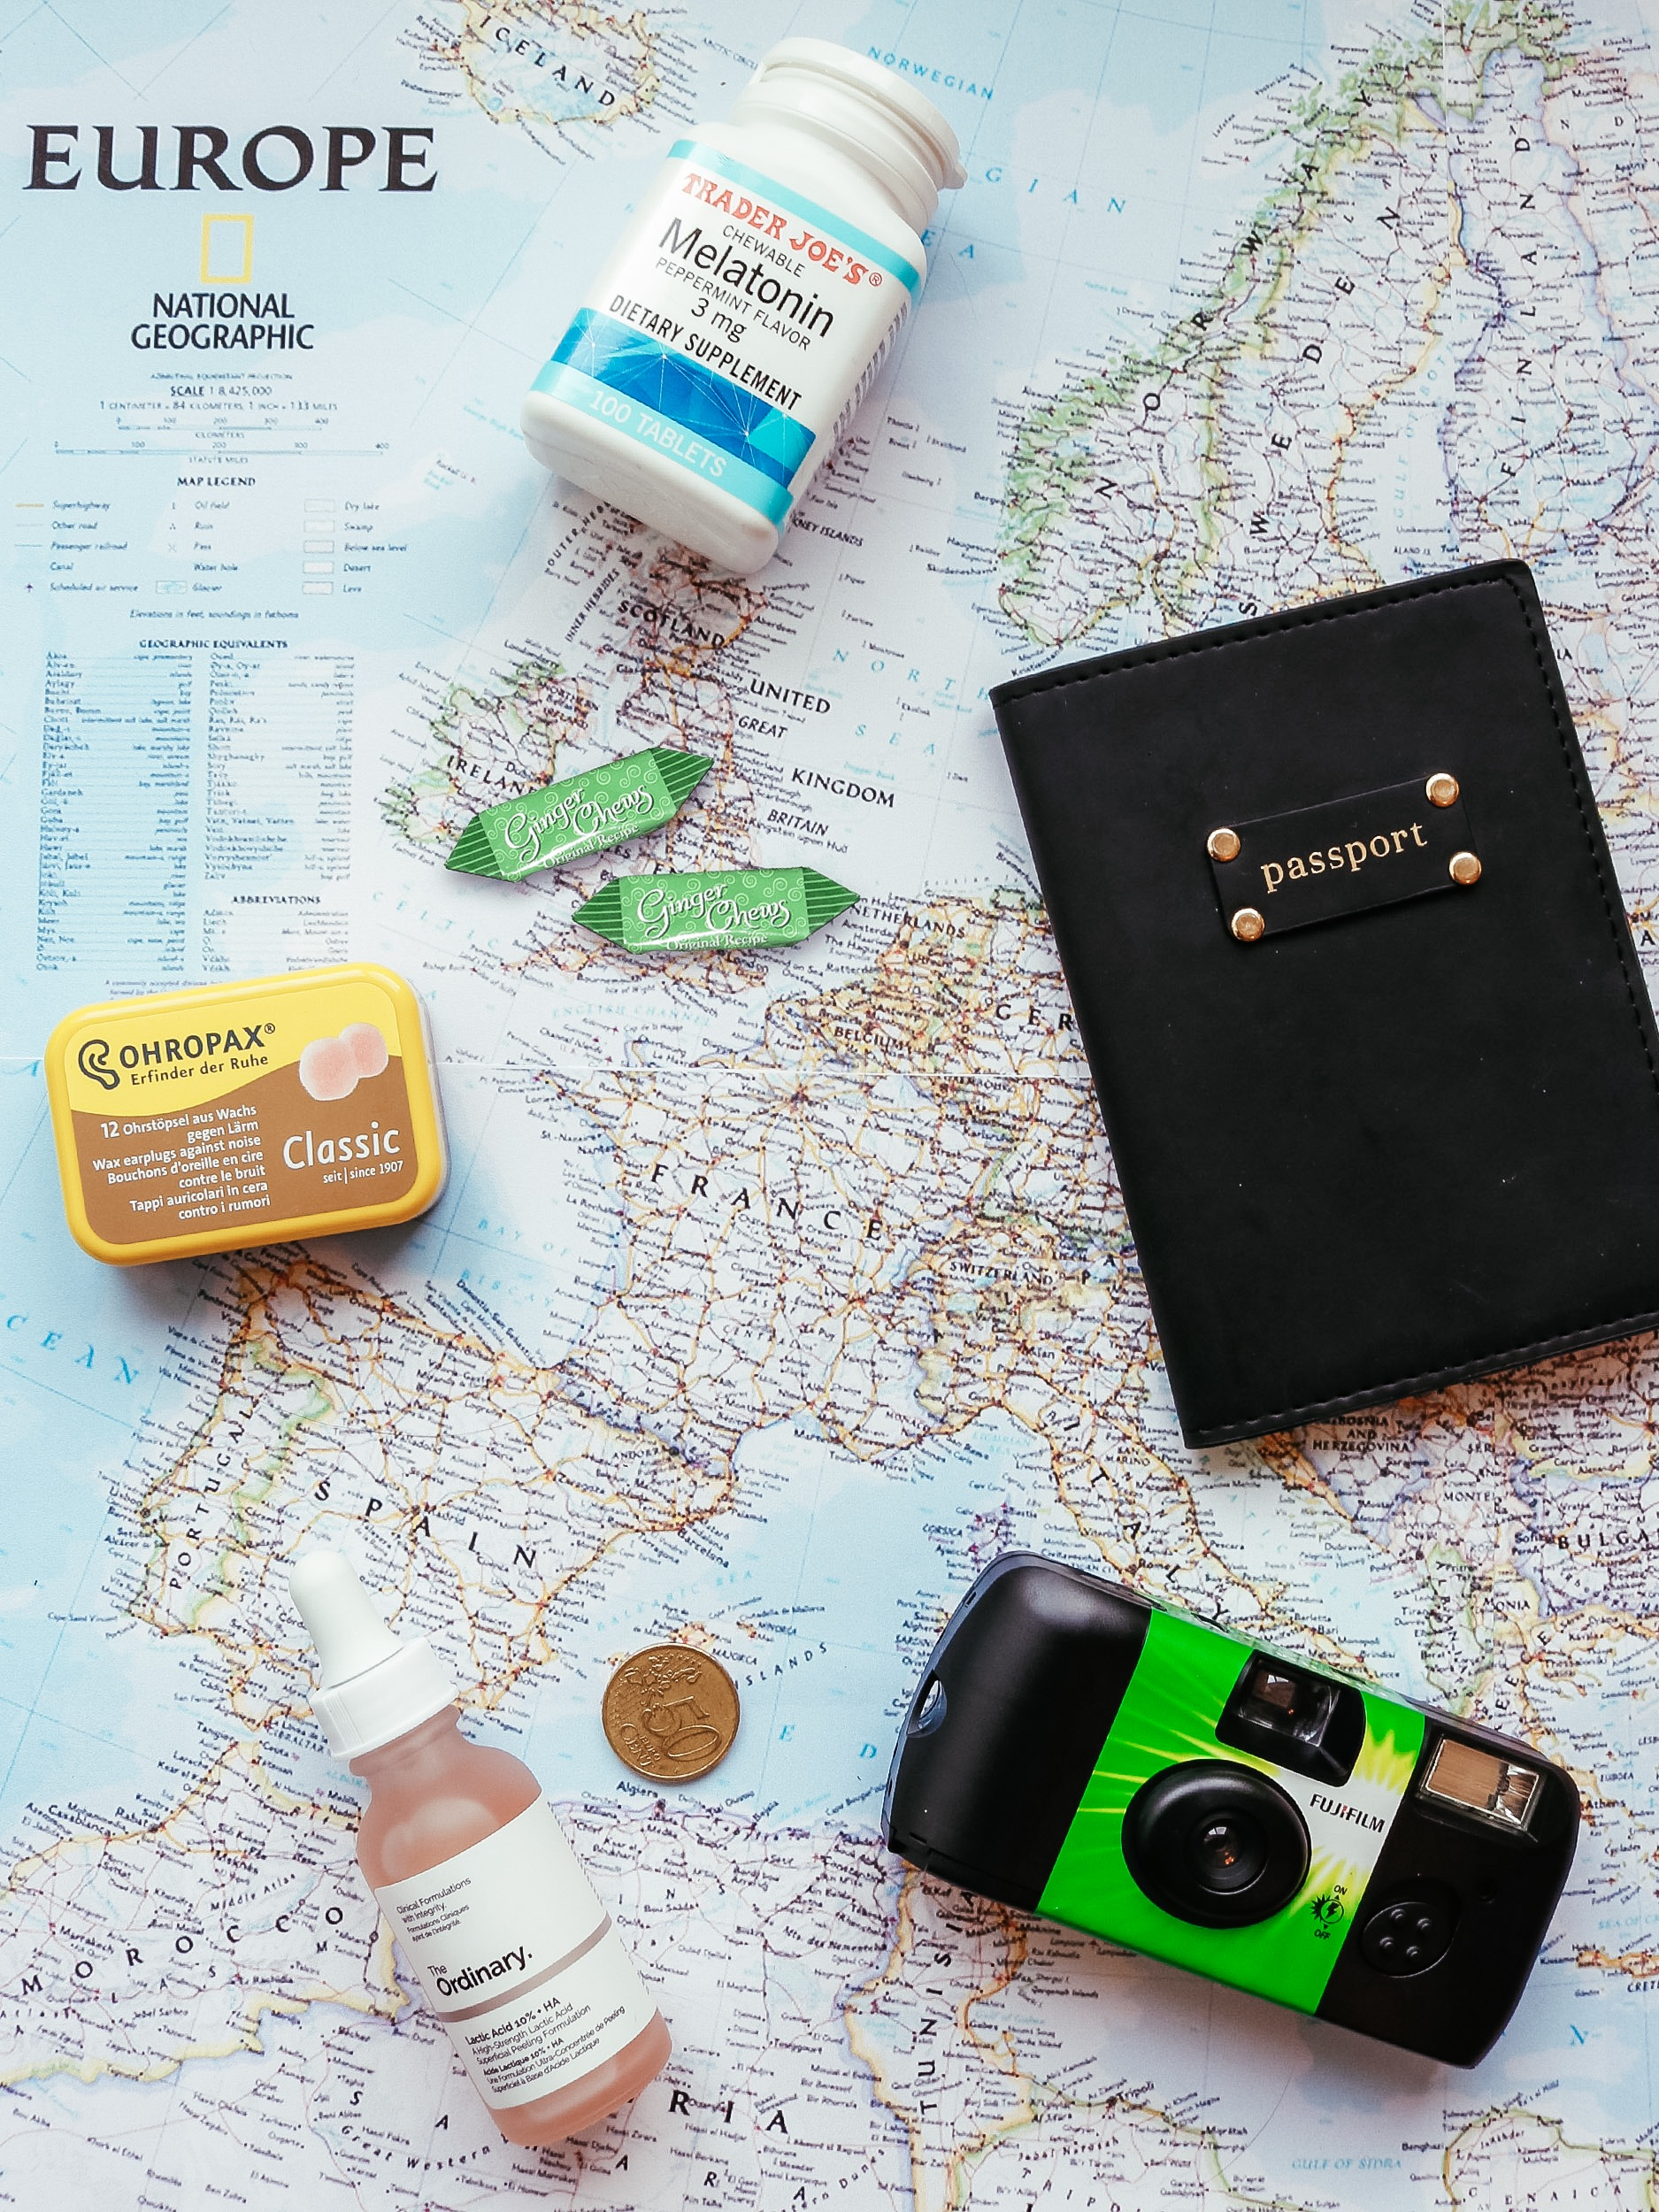 Travel essentials for a long flight – Kessler Ramirez